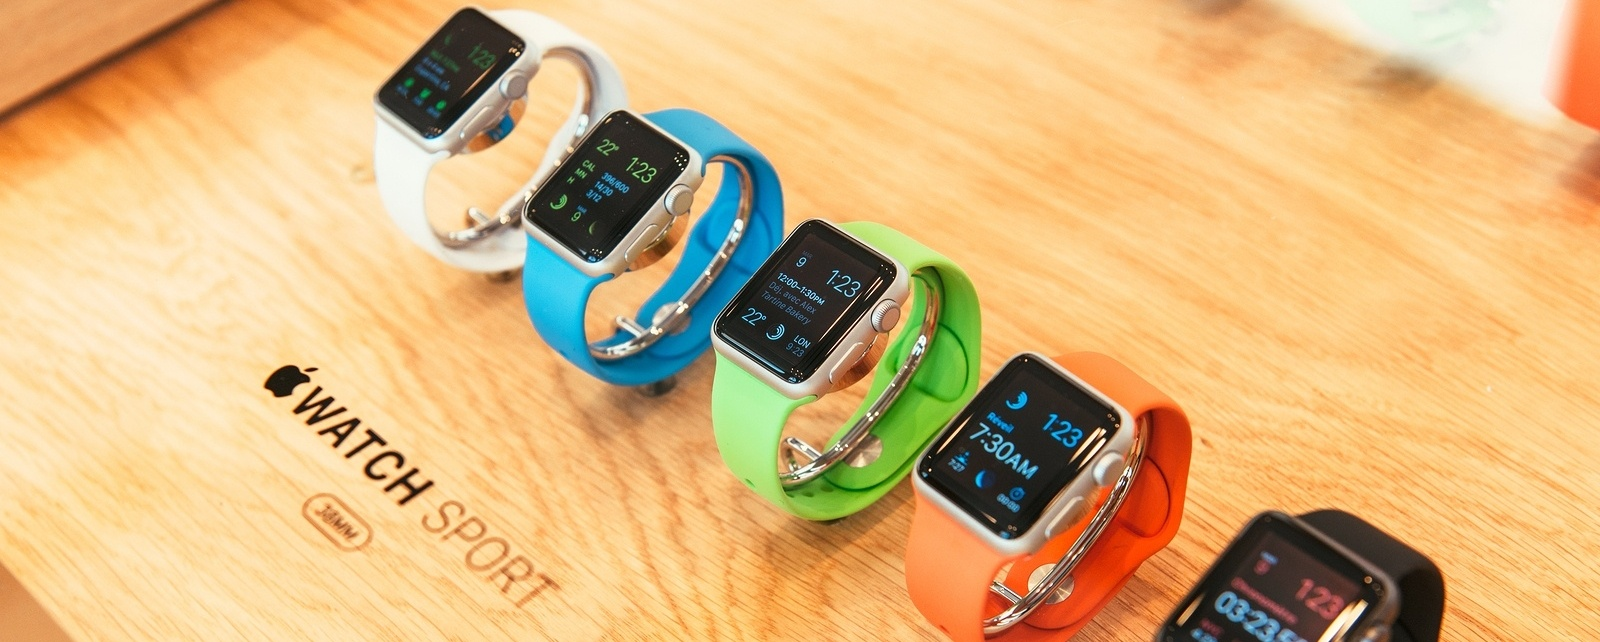 bigstock-Apple-Watch-Starts-Selling-Wor-87563384-979794-edited